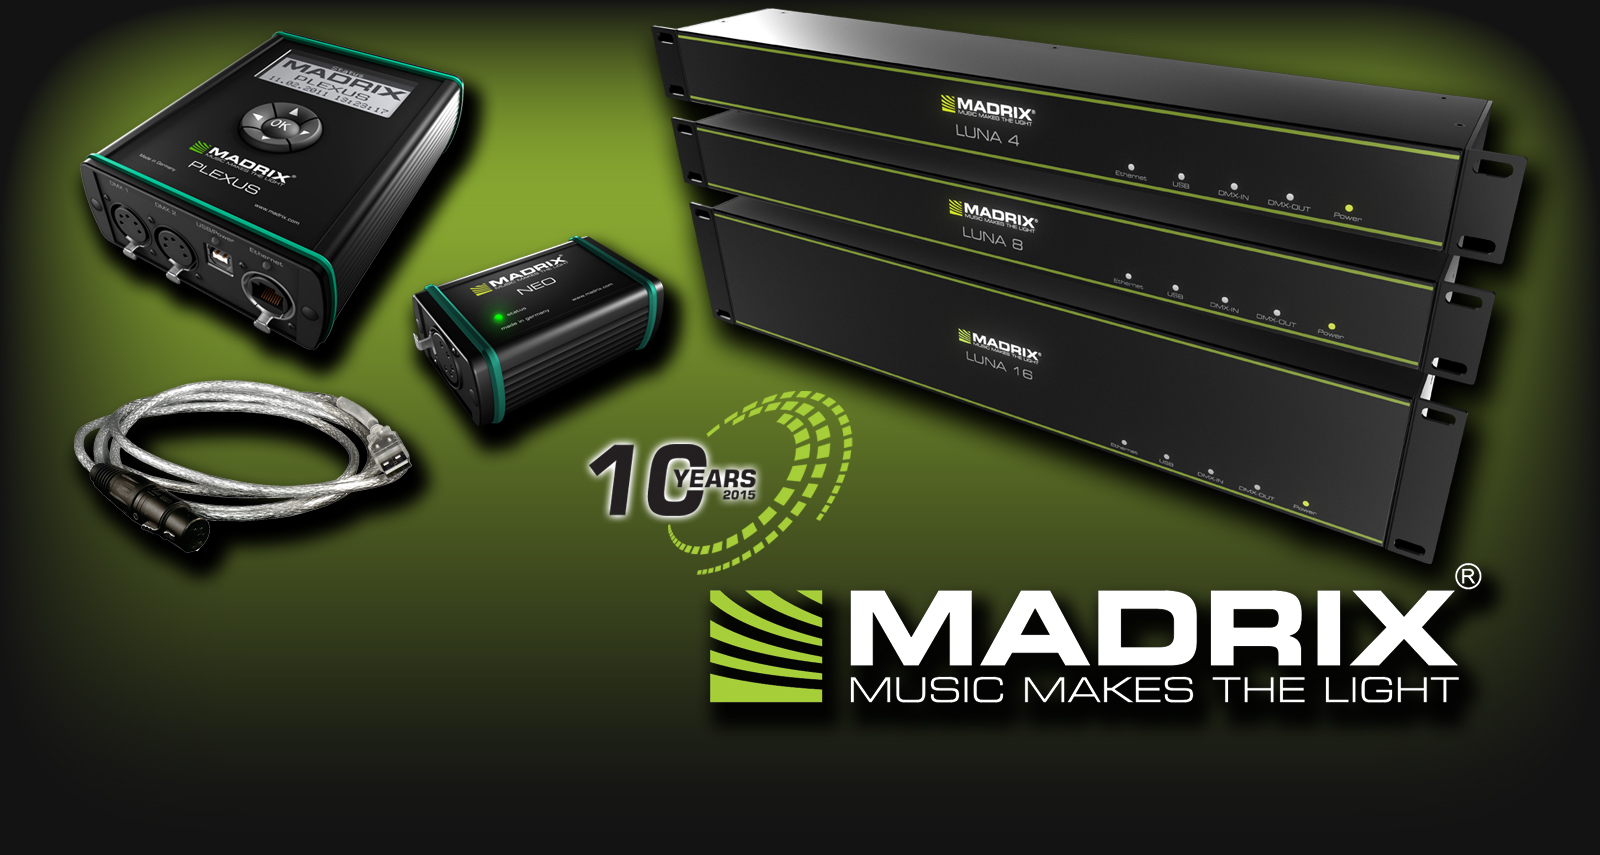 The Madrix Range